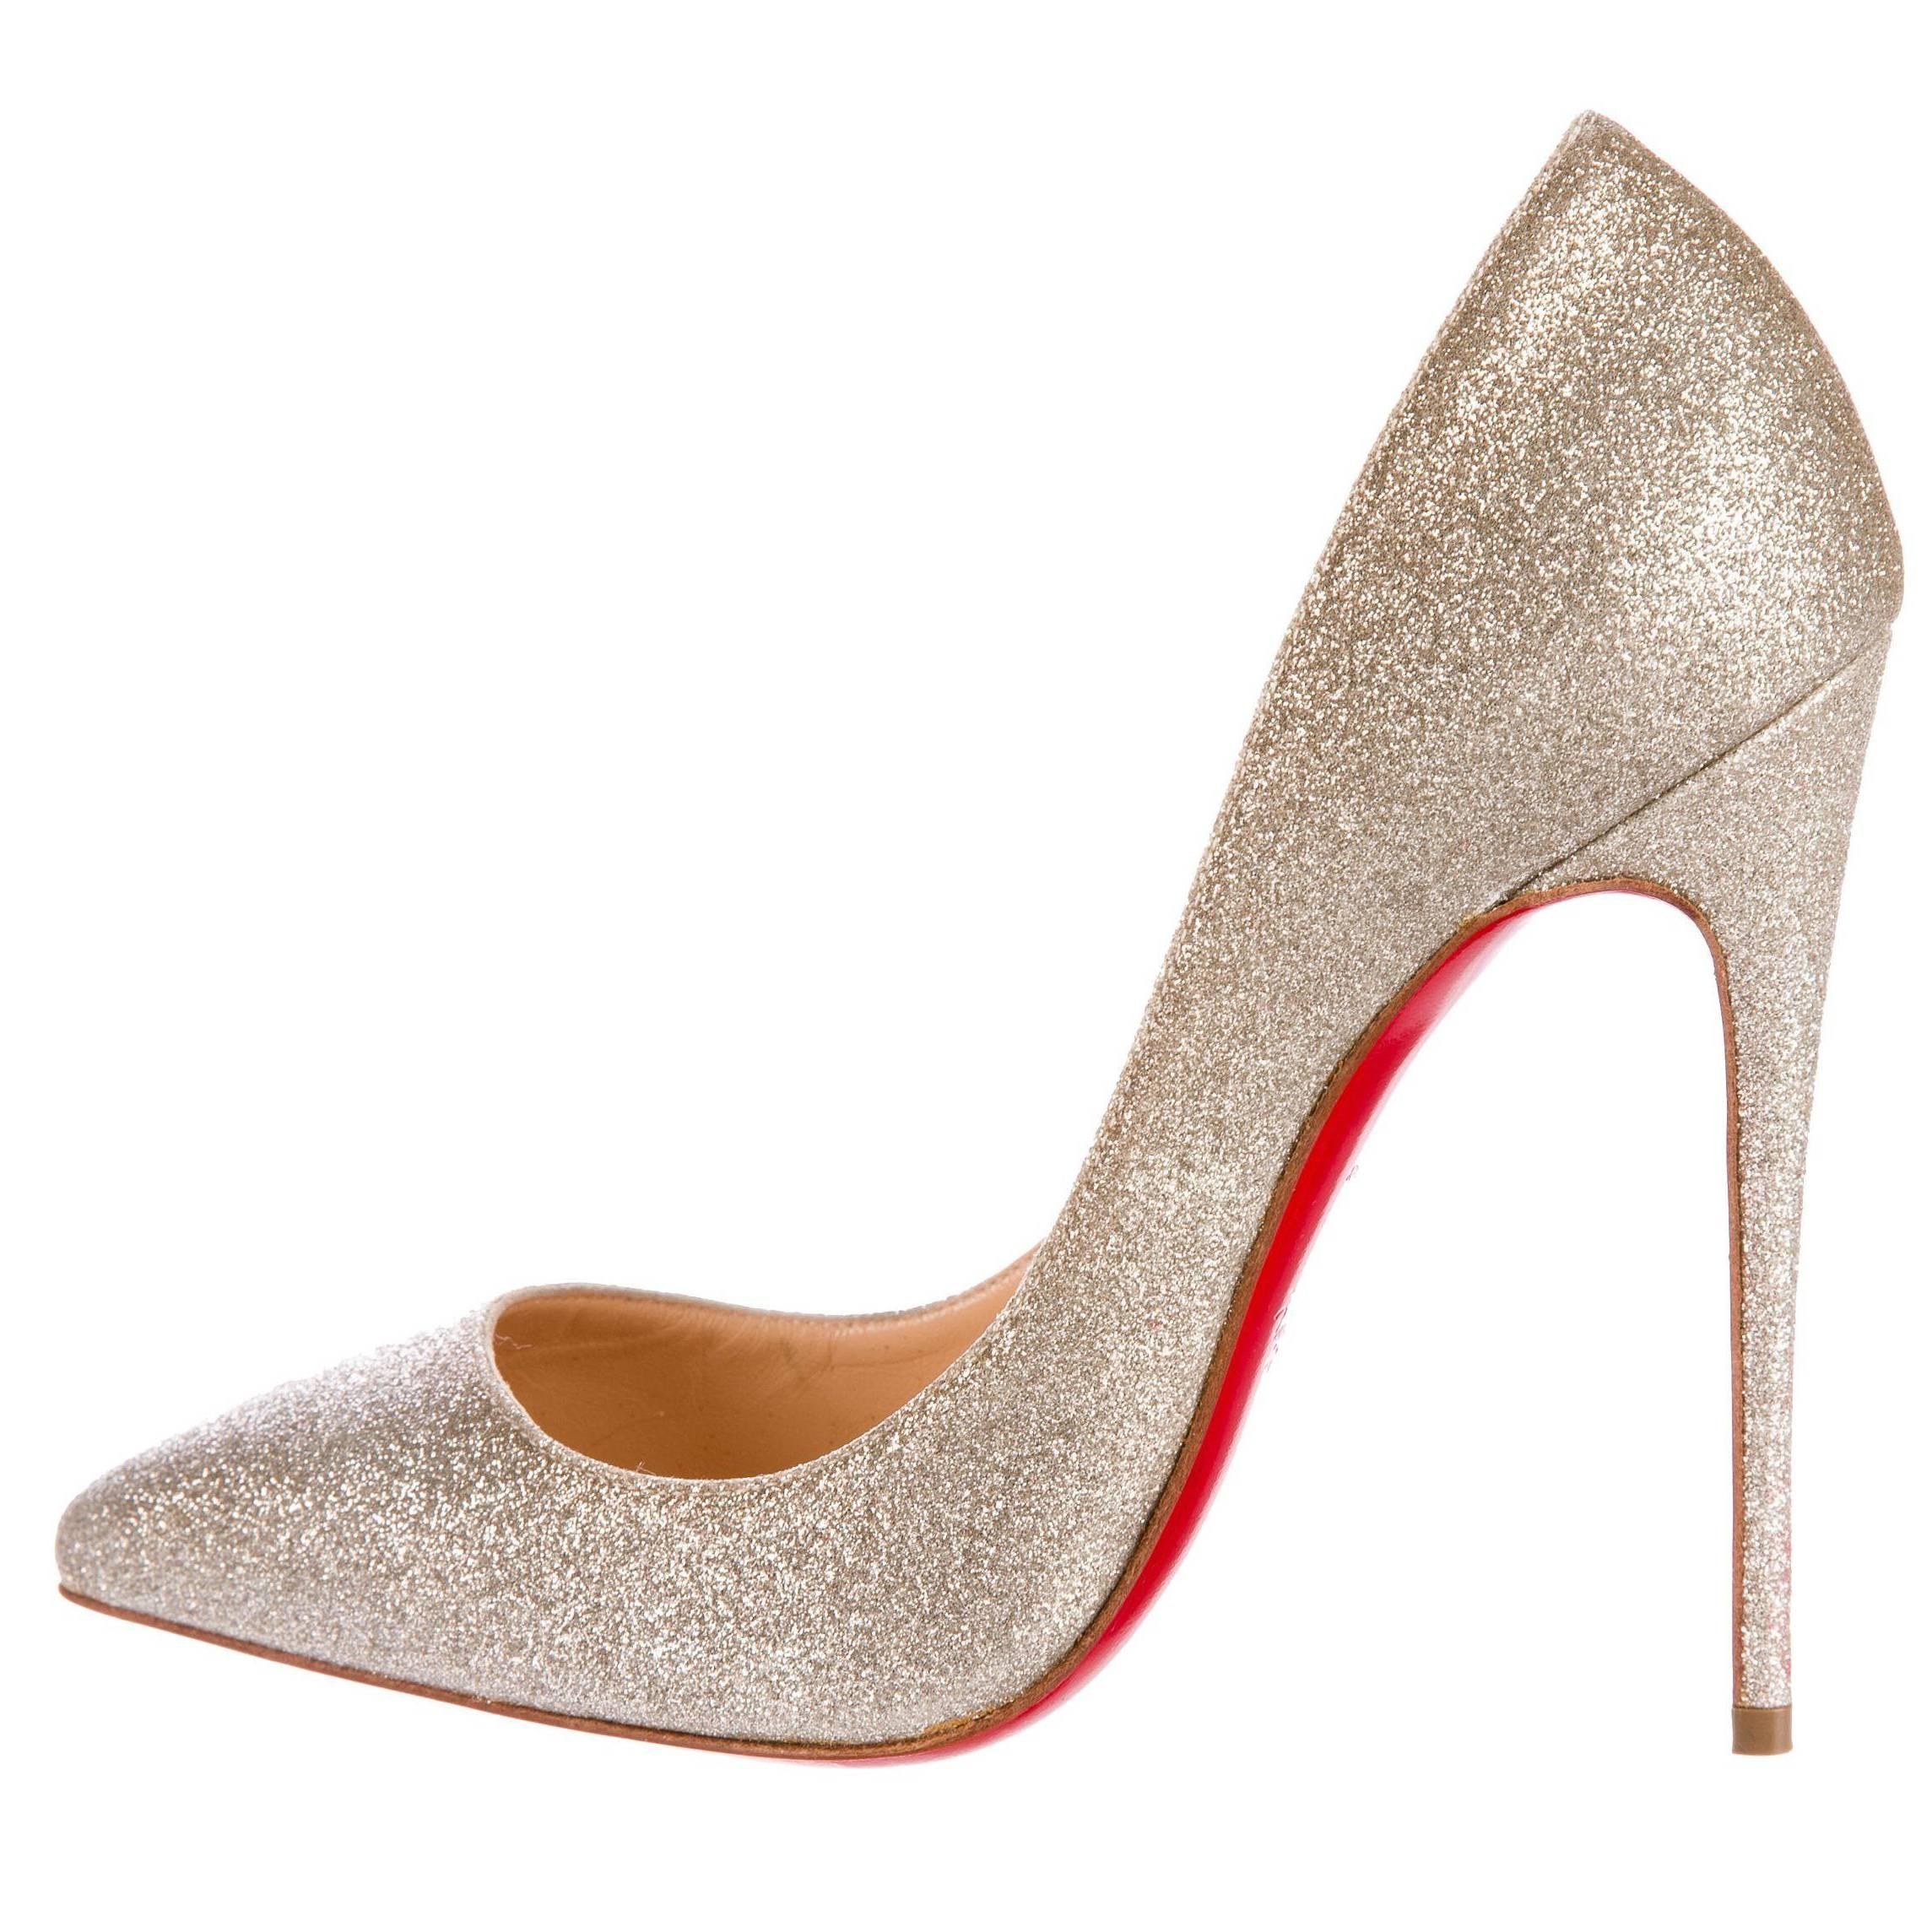 c3e44c84d7d Christian Louboutin NEW Pigalle 120 Tan Nude Patent Leather Pumps Heels in  Box